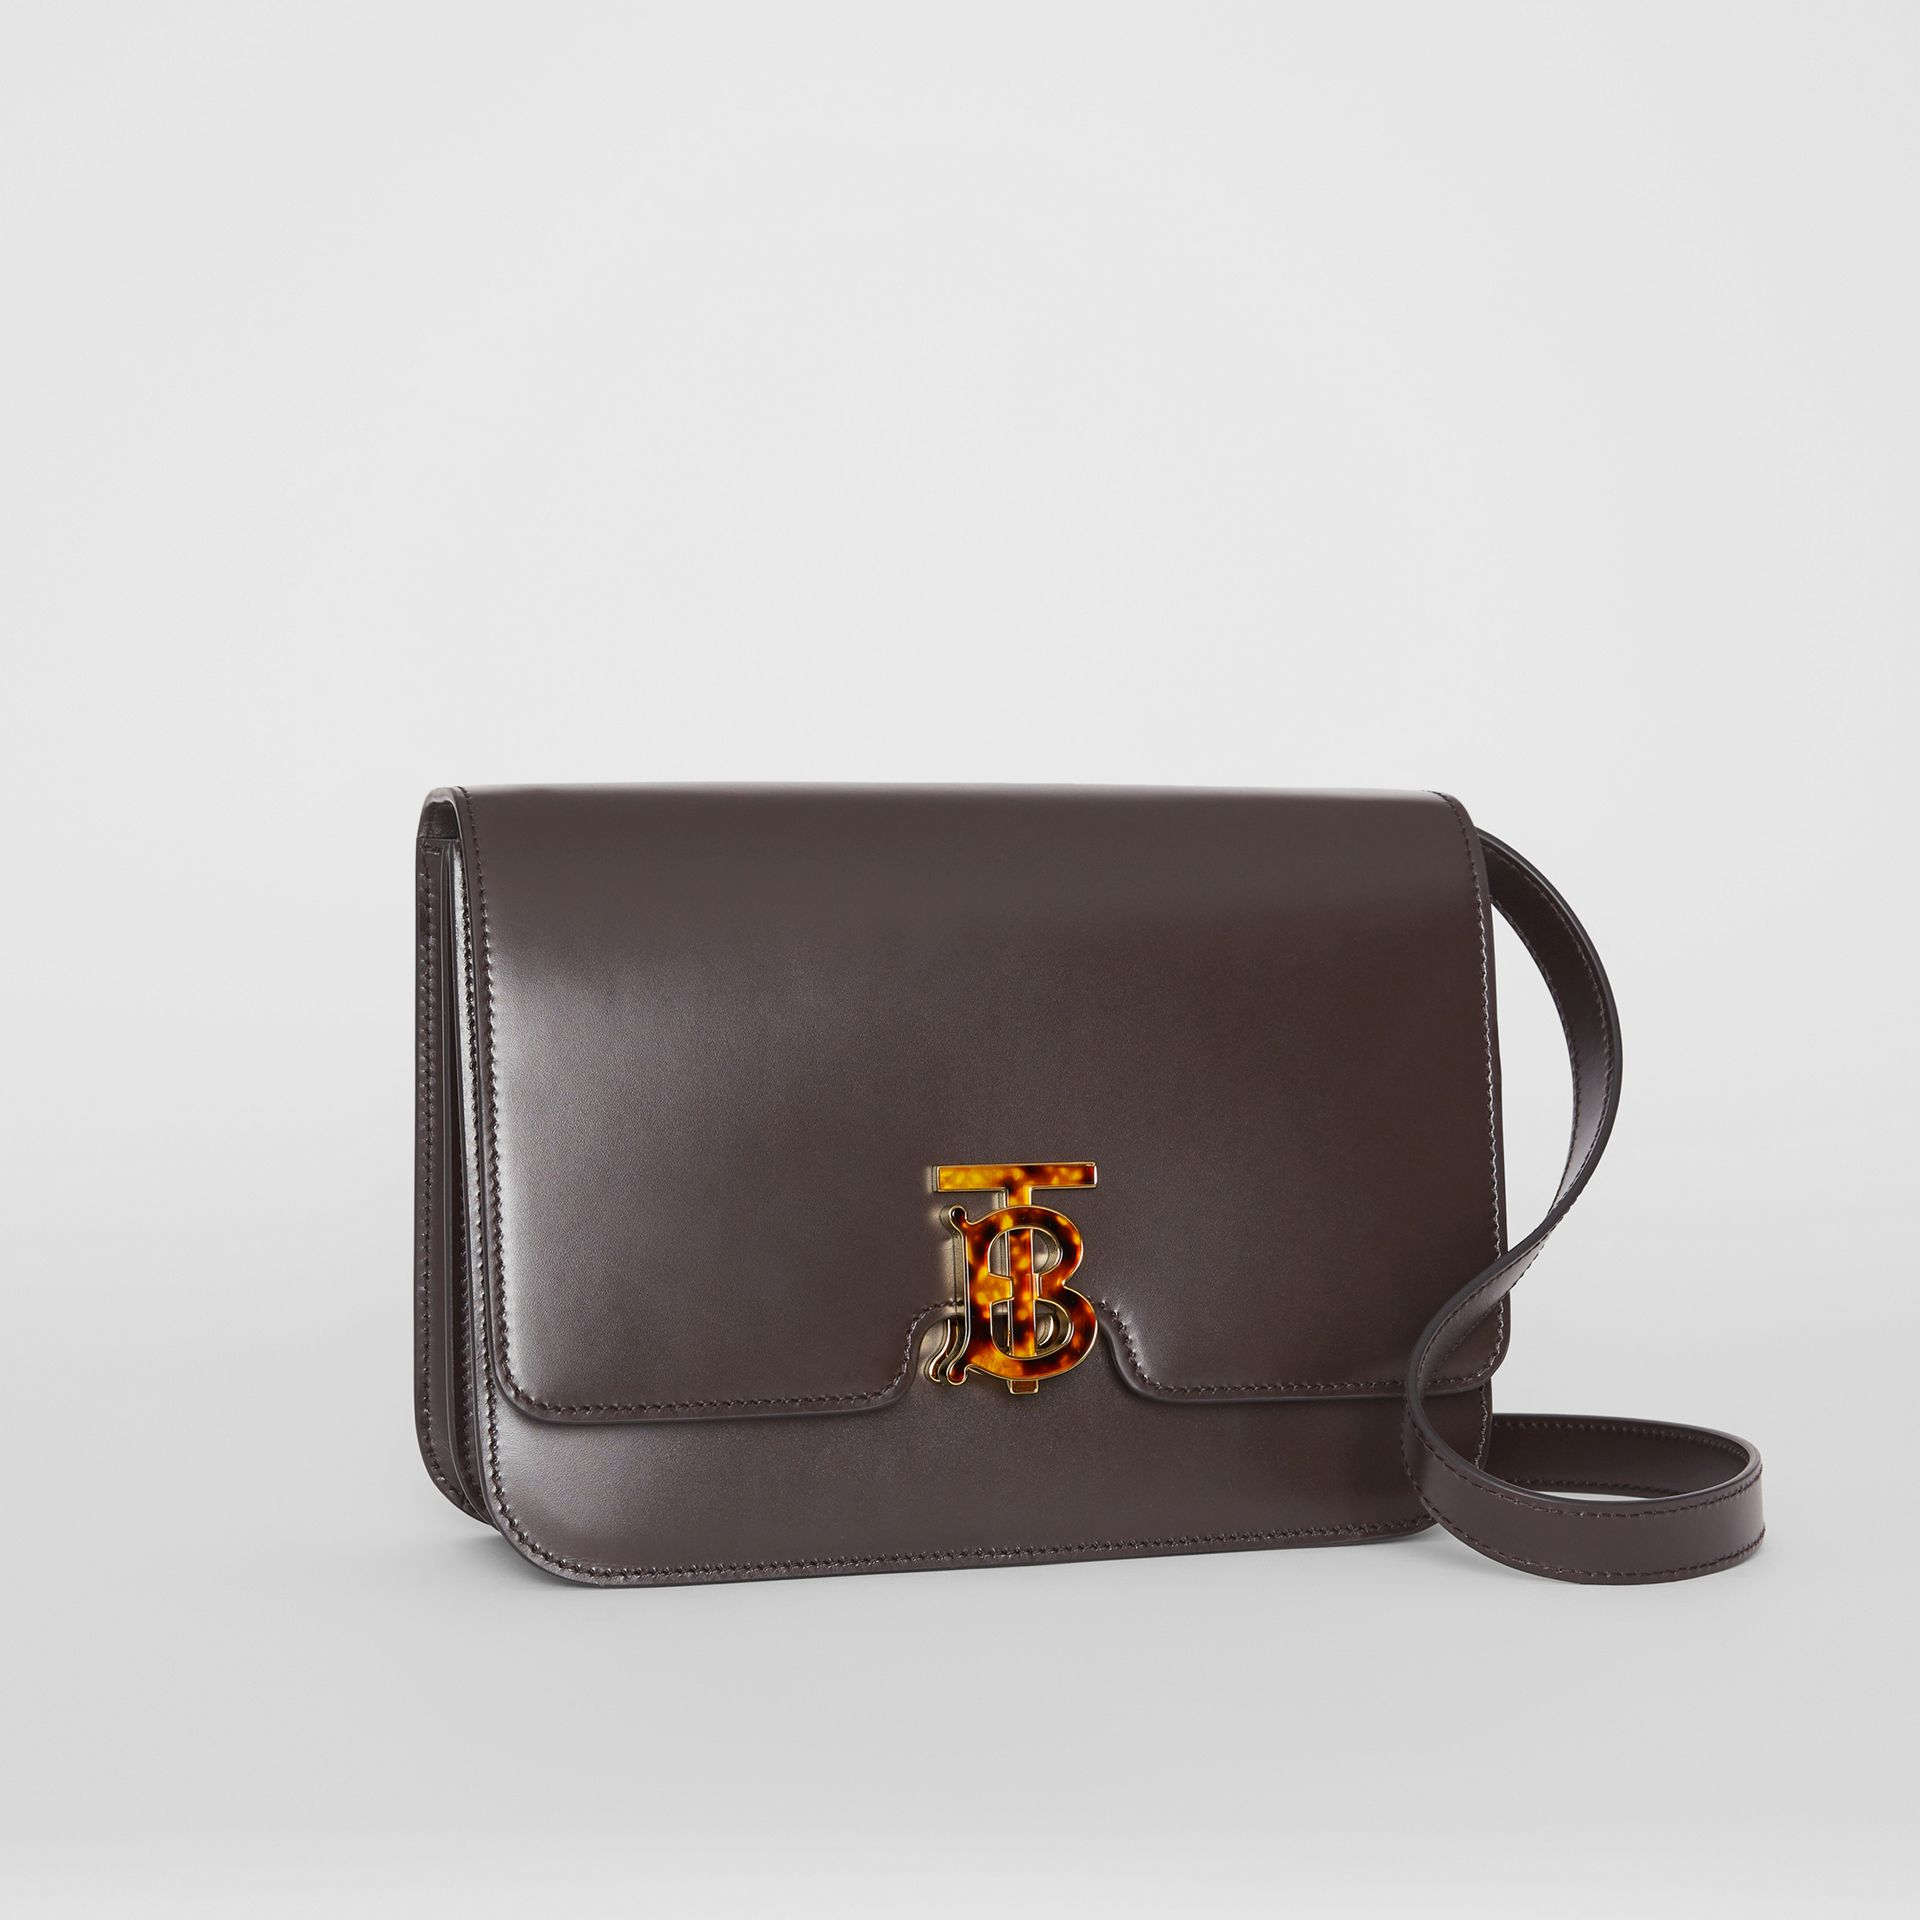 Medium Leather TB Bag in Coffee - Women | Burberry - gallery image 6